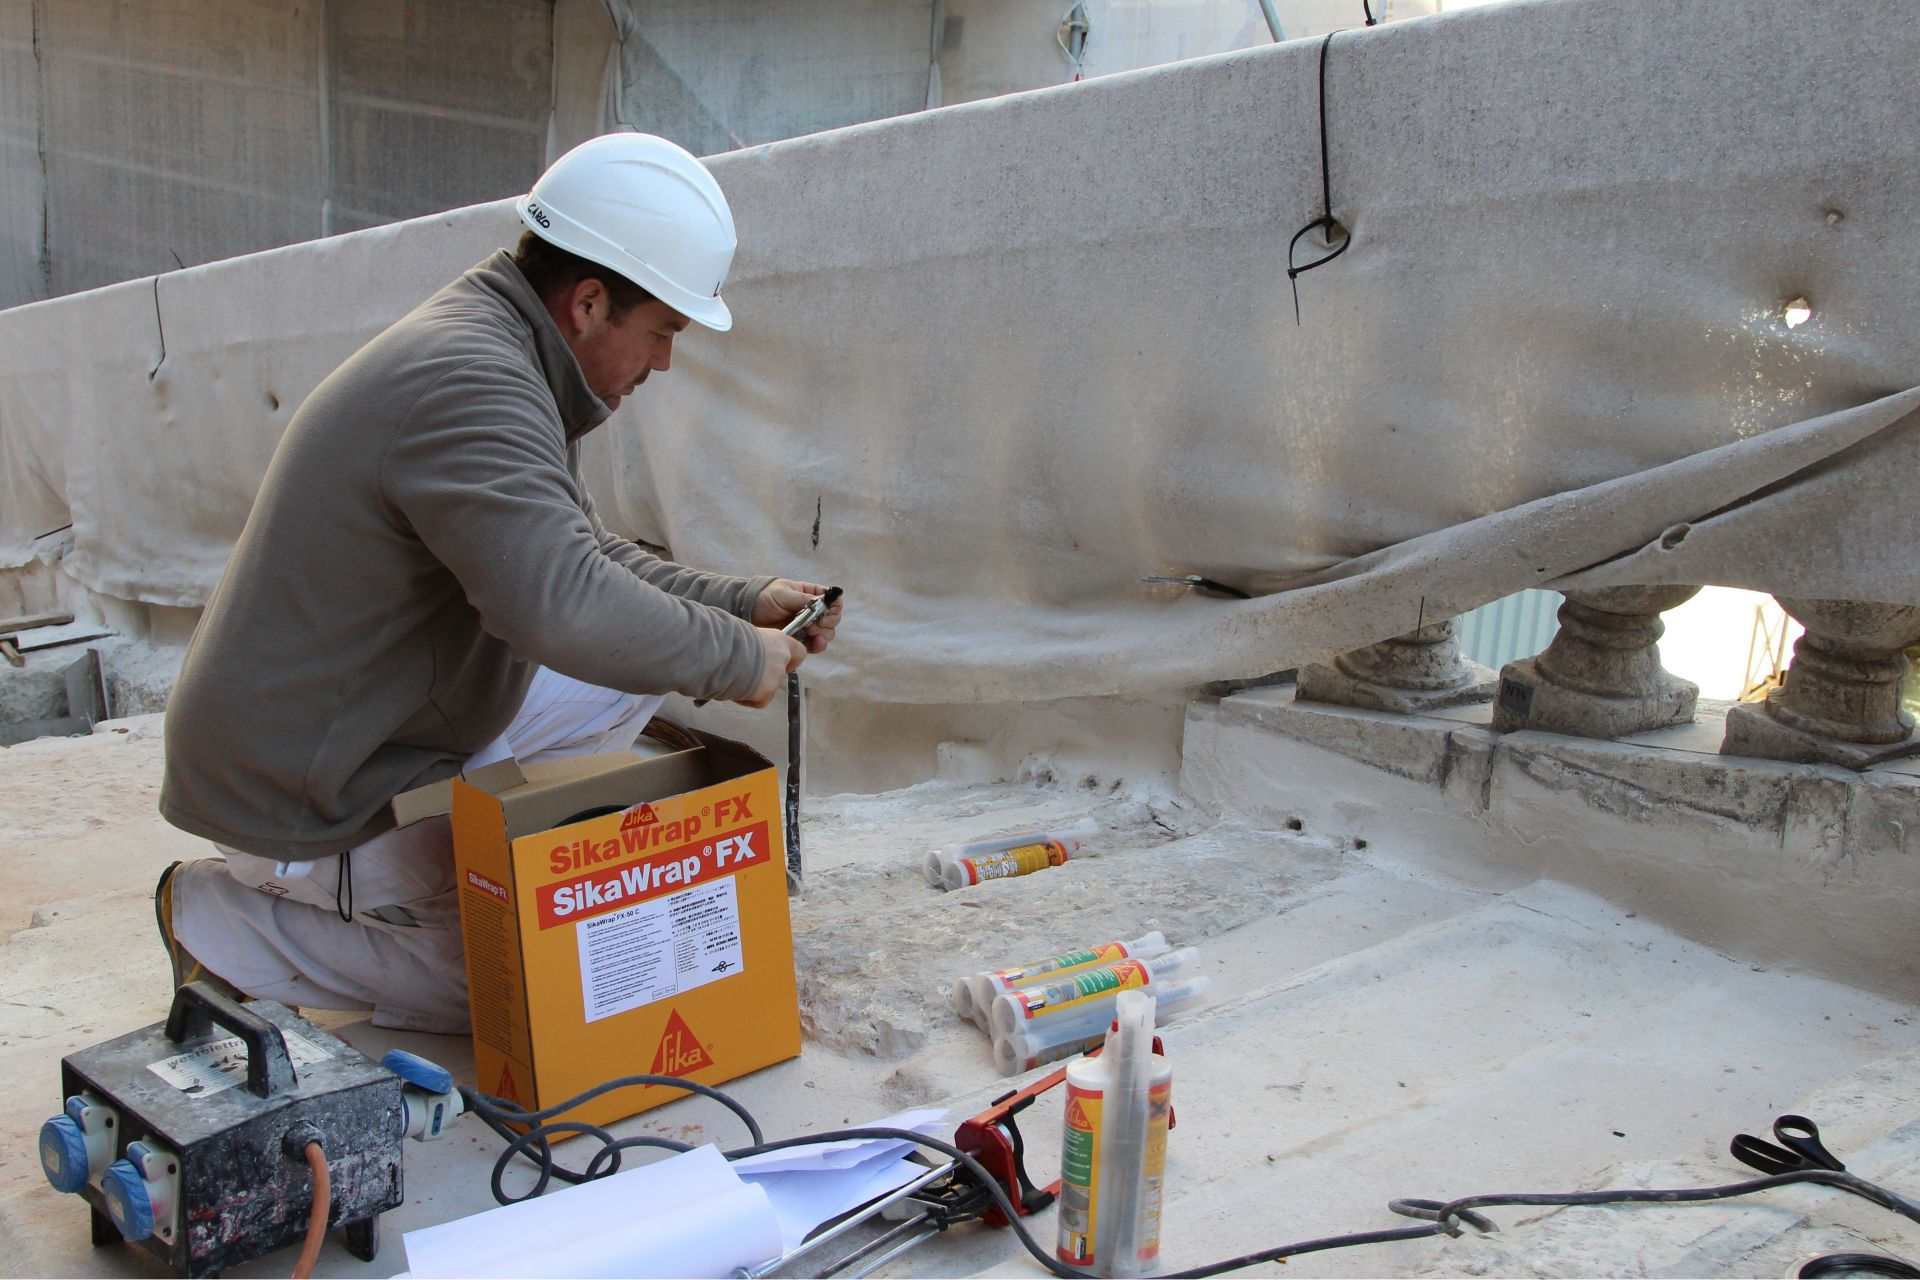 Man repairing Rialto Bridge in Venice Italy with Sika products